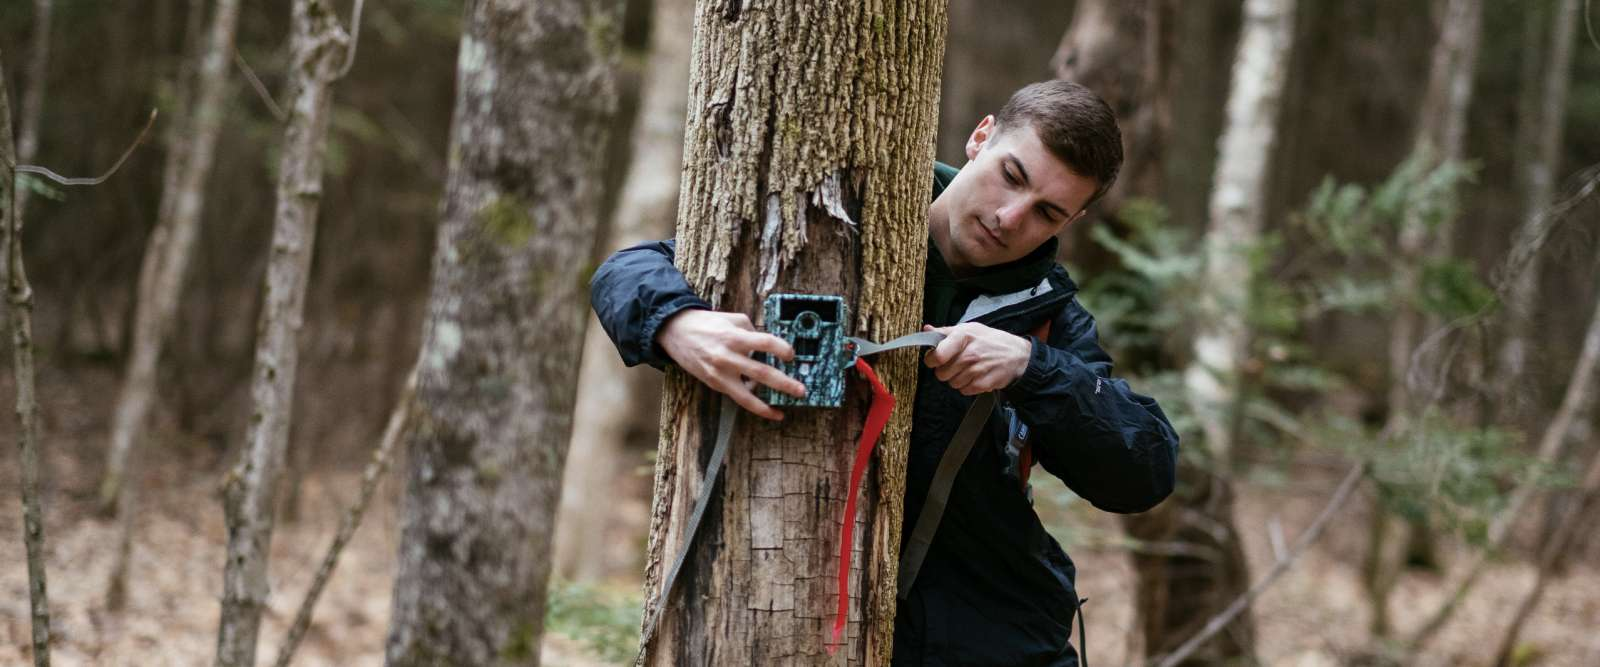 Outdoors, affixing device to tree